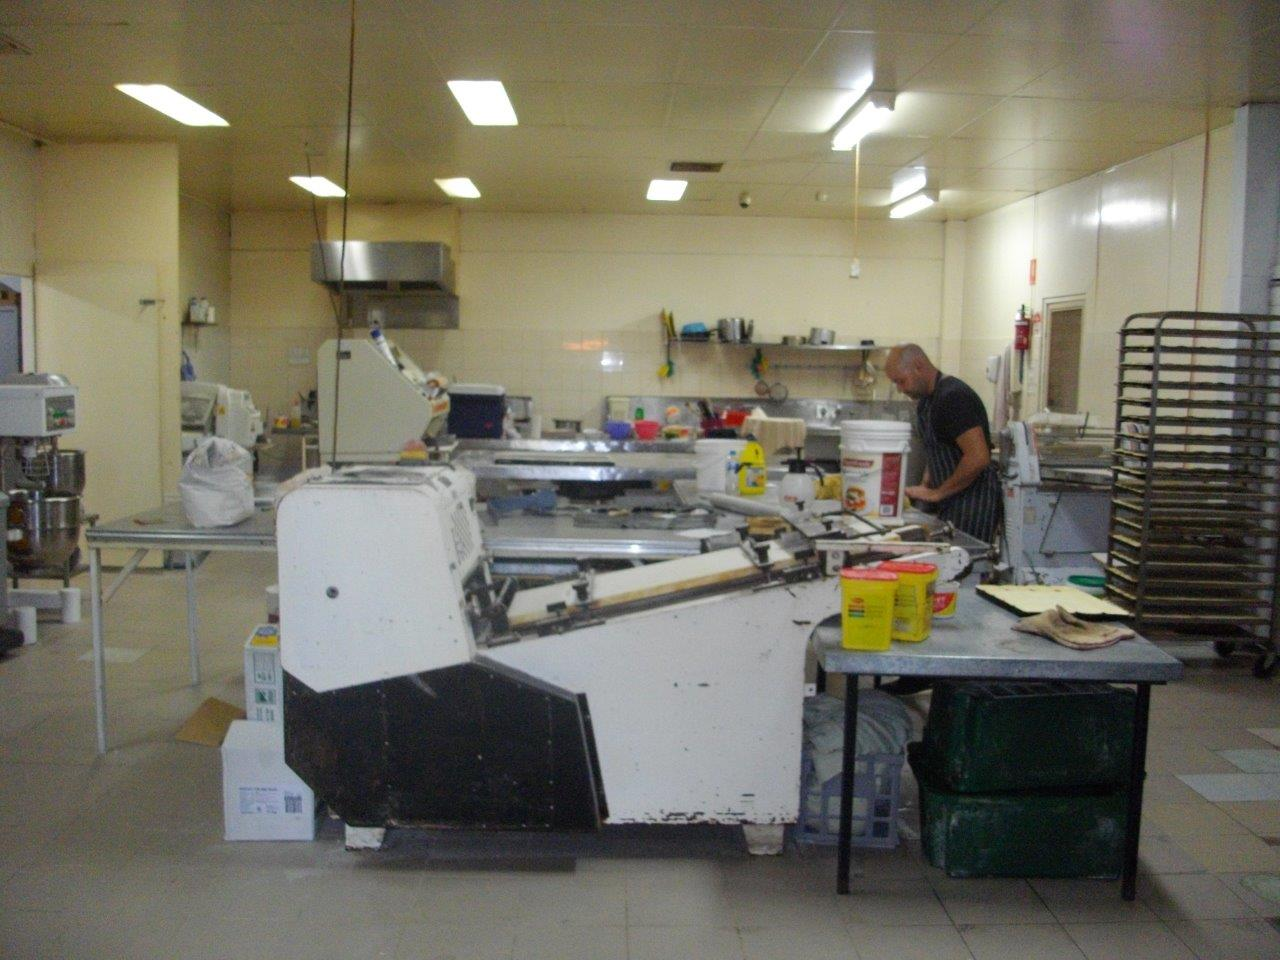 cash-cow-very-busy-bakery-business-for-sale-6